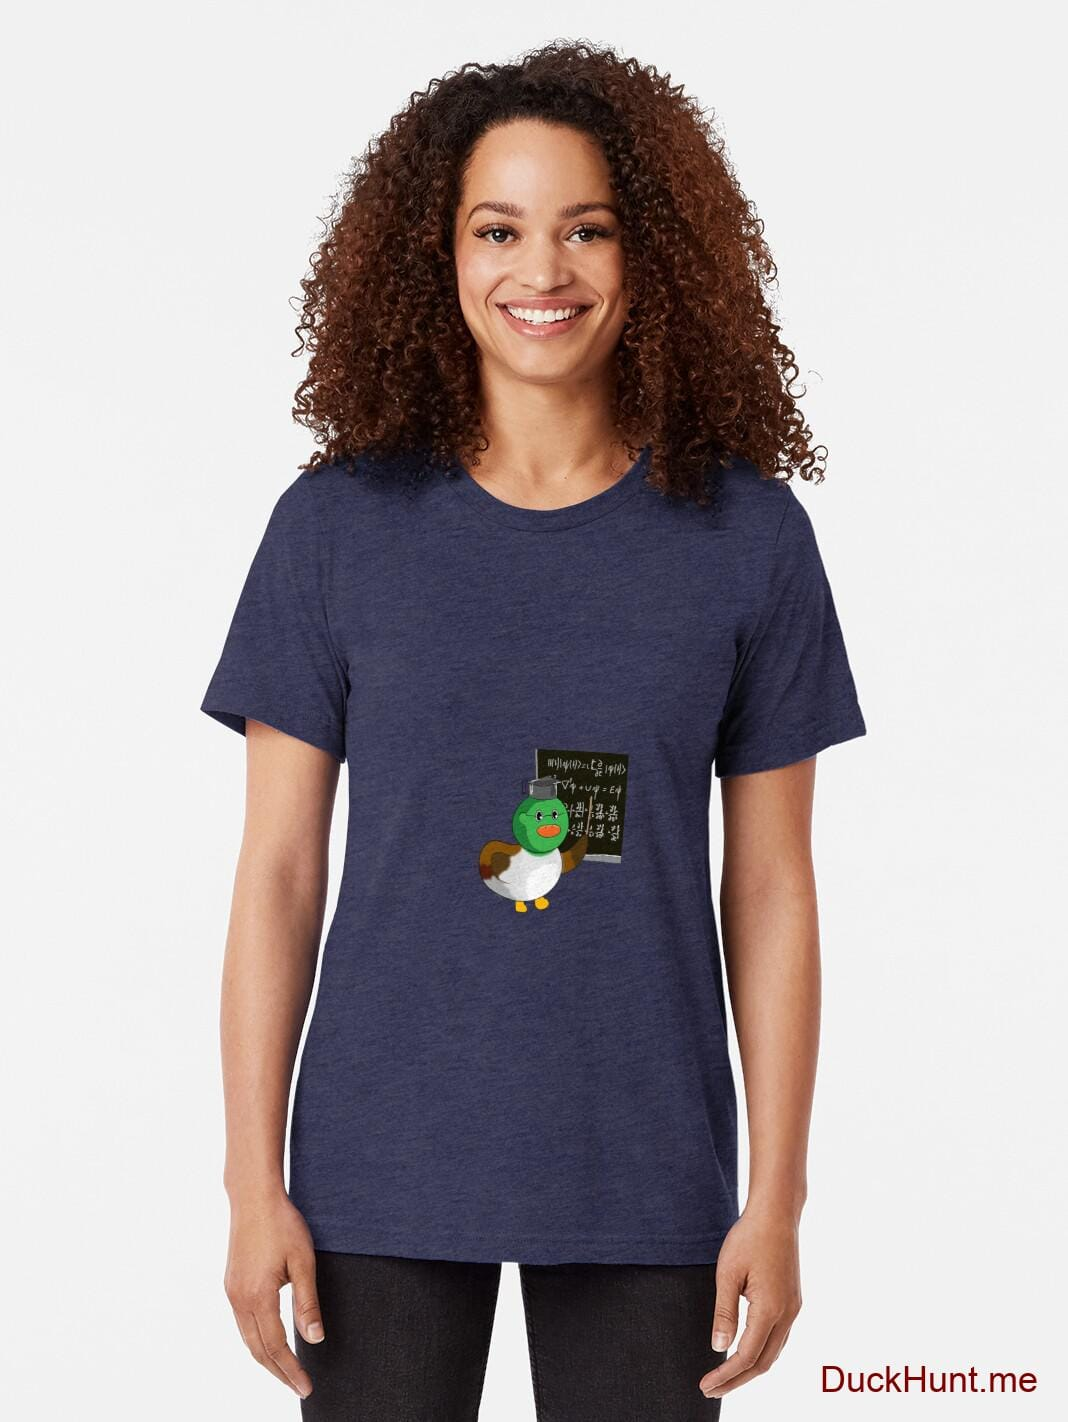 Prof Duck Navy Tri-blend T-Shirt (Front printed) alternative image 1